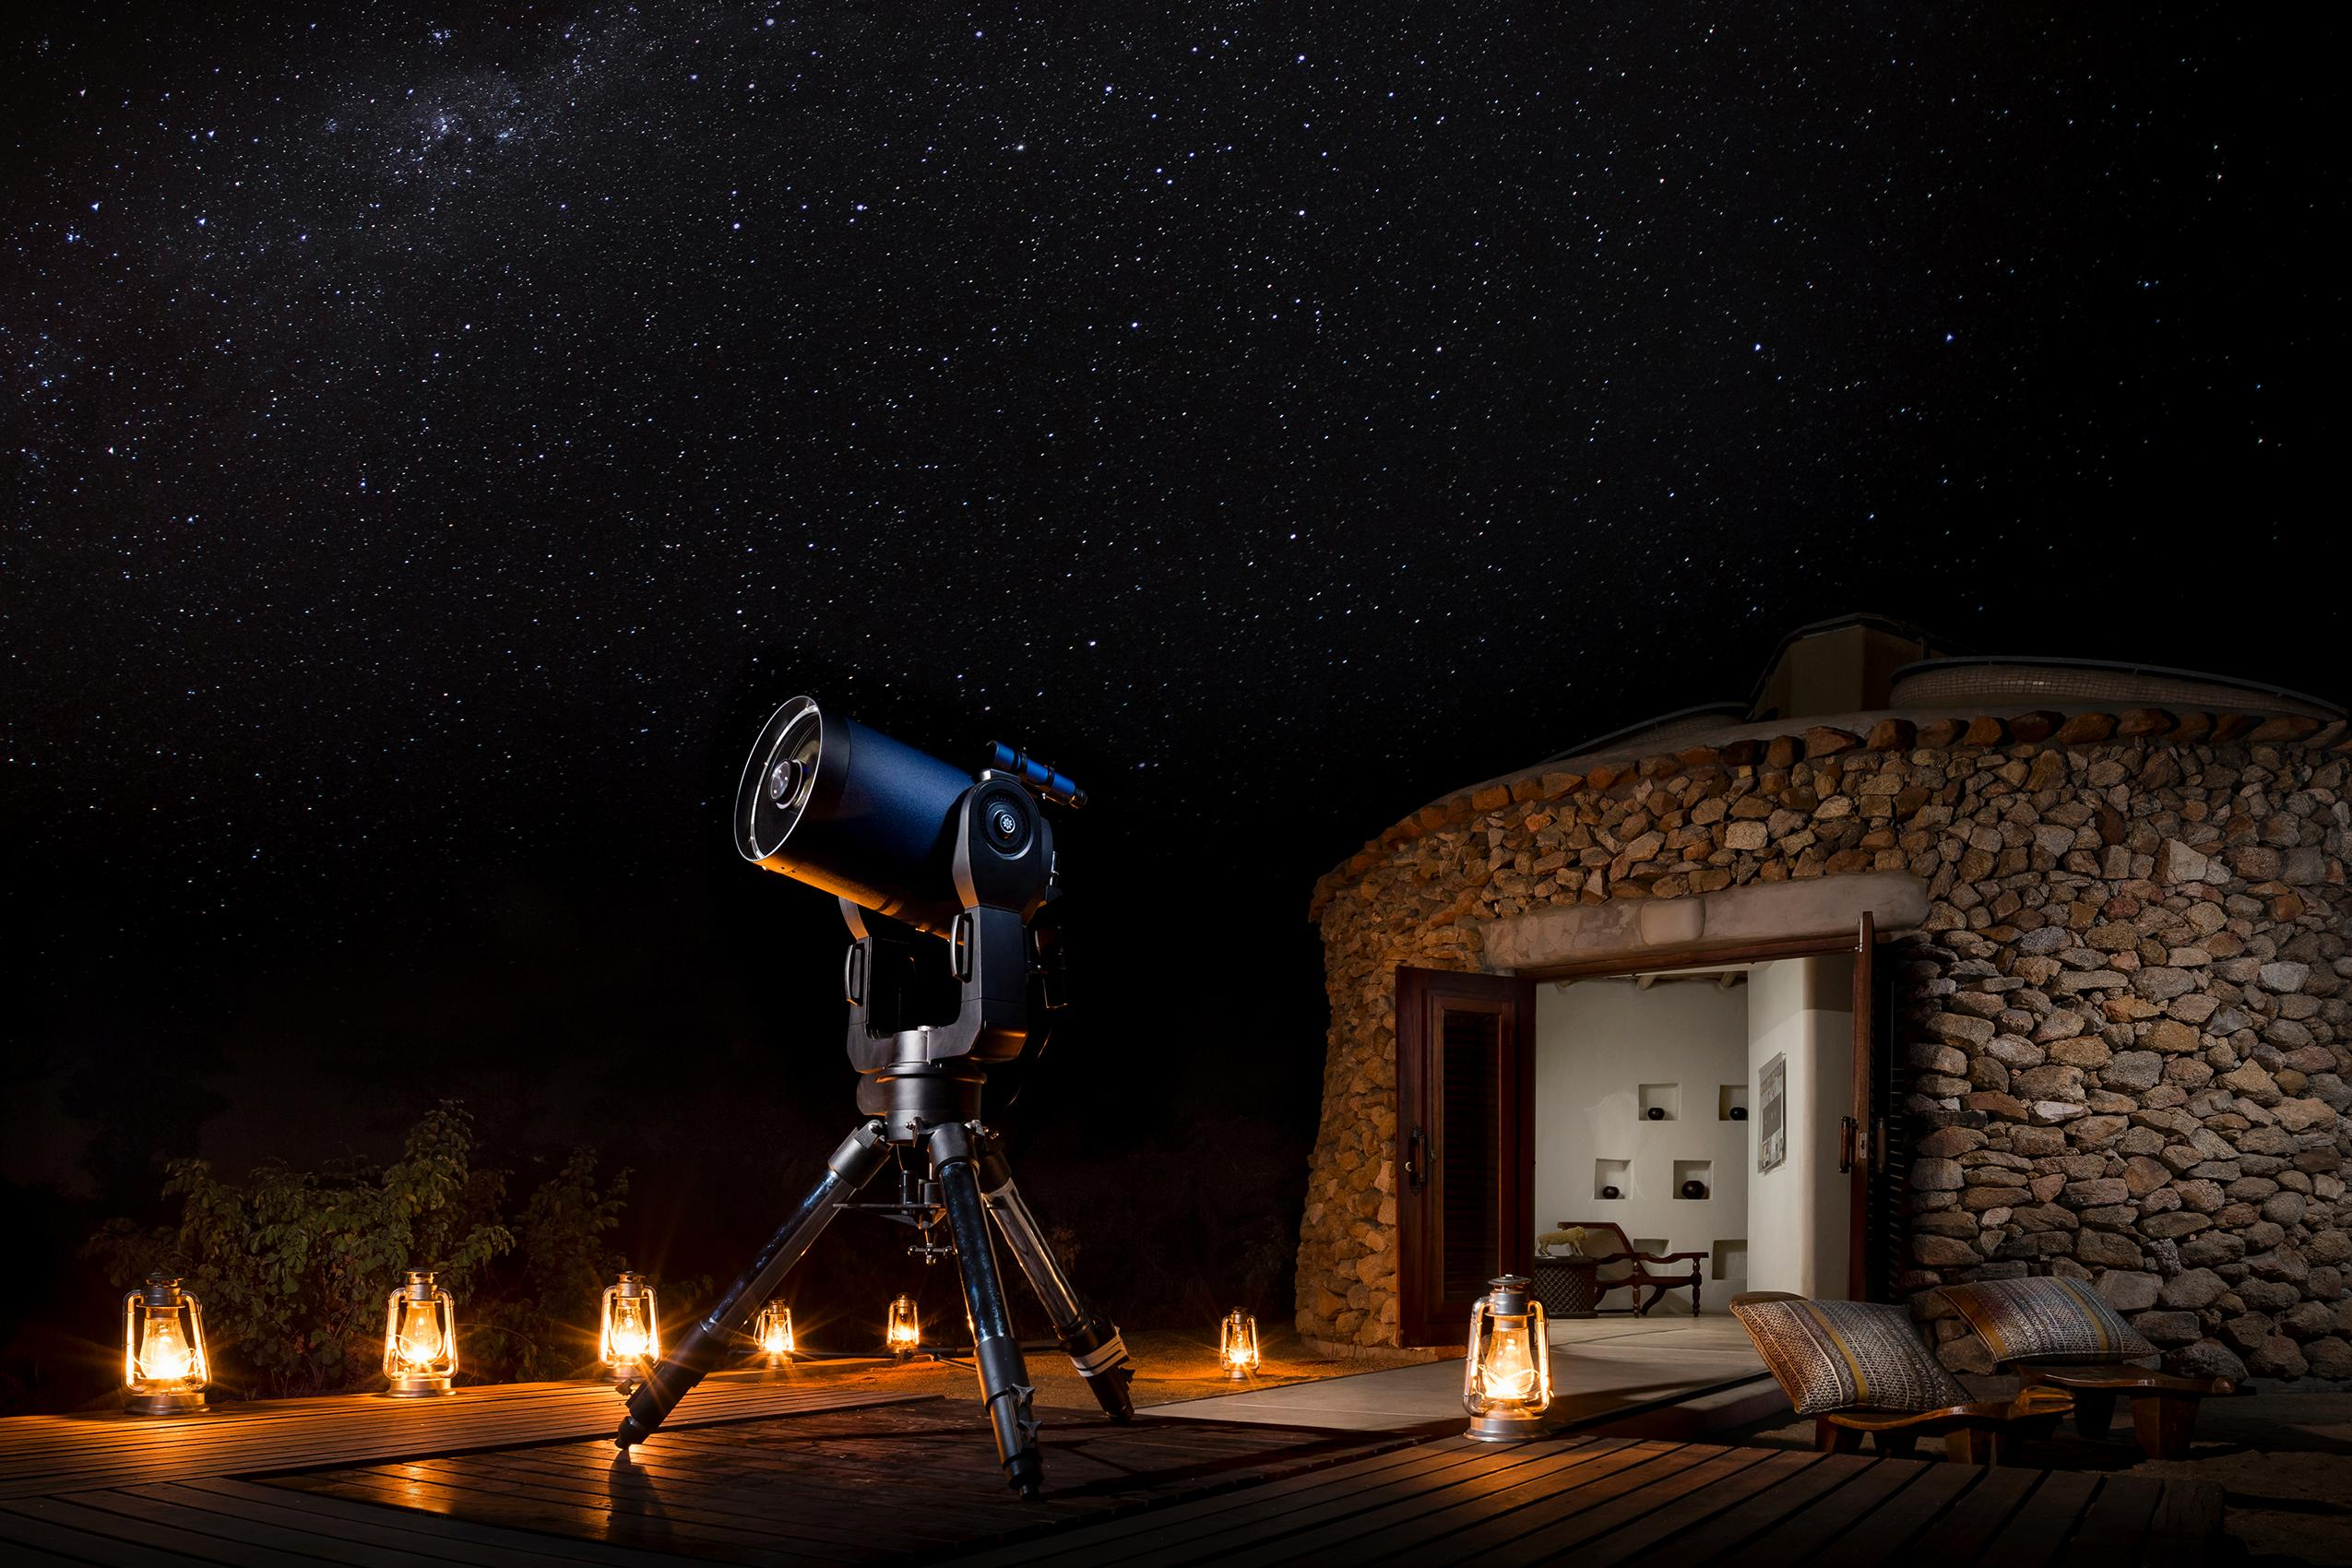 Safari Lodge stargazing